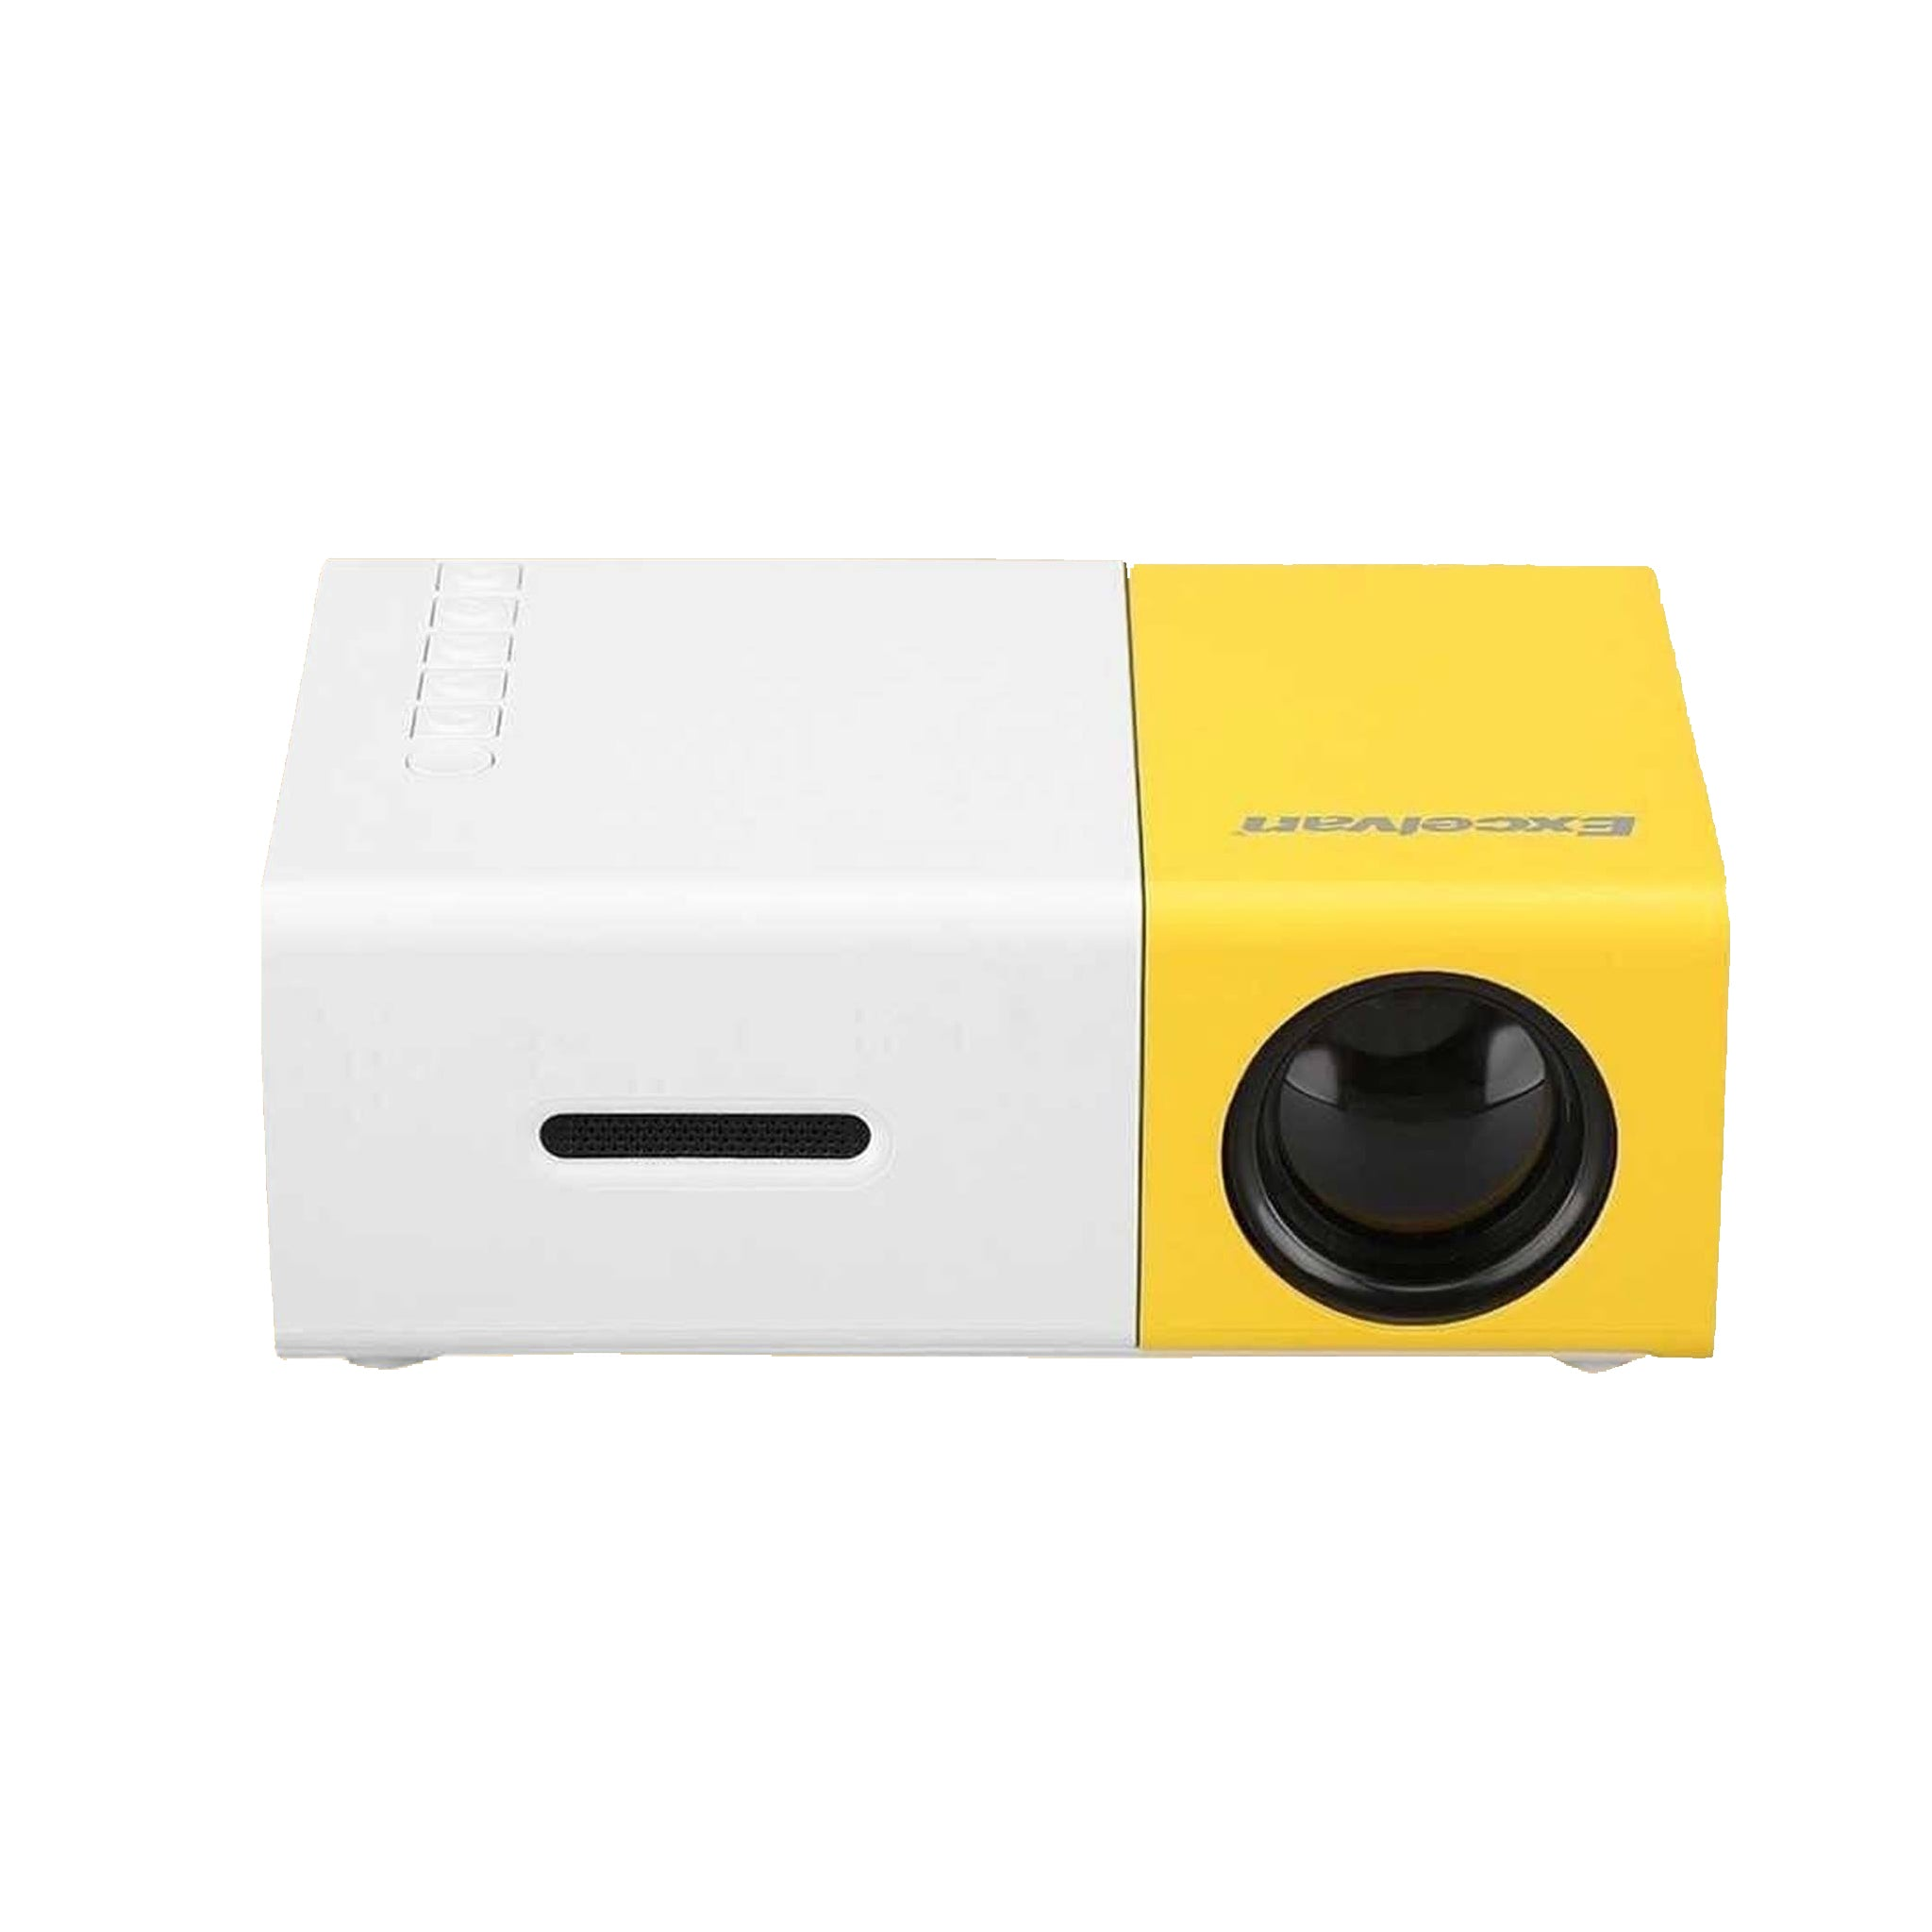 ANDOWL LED PROJECTOR